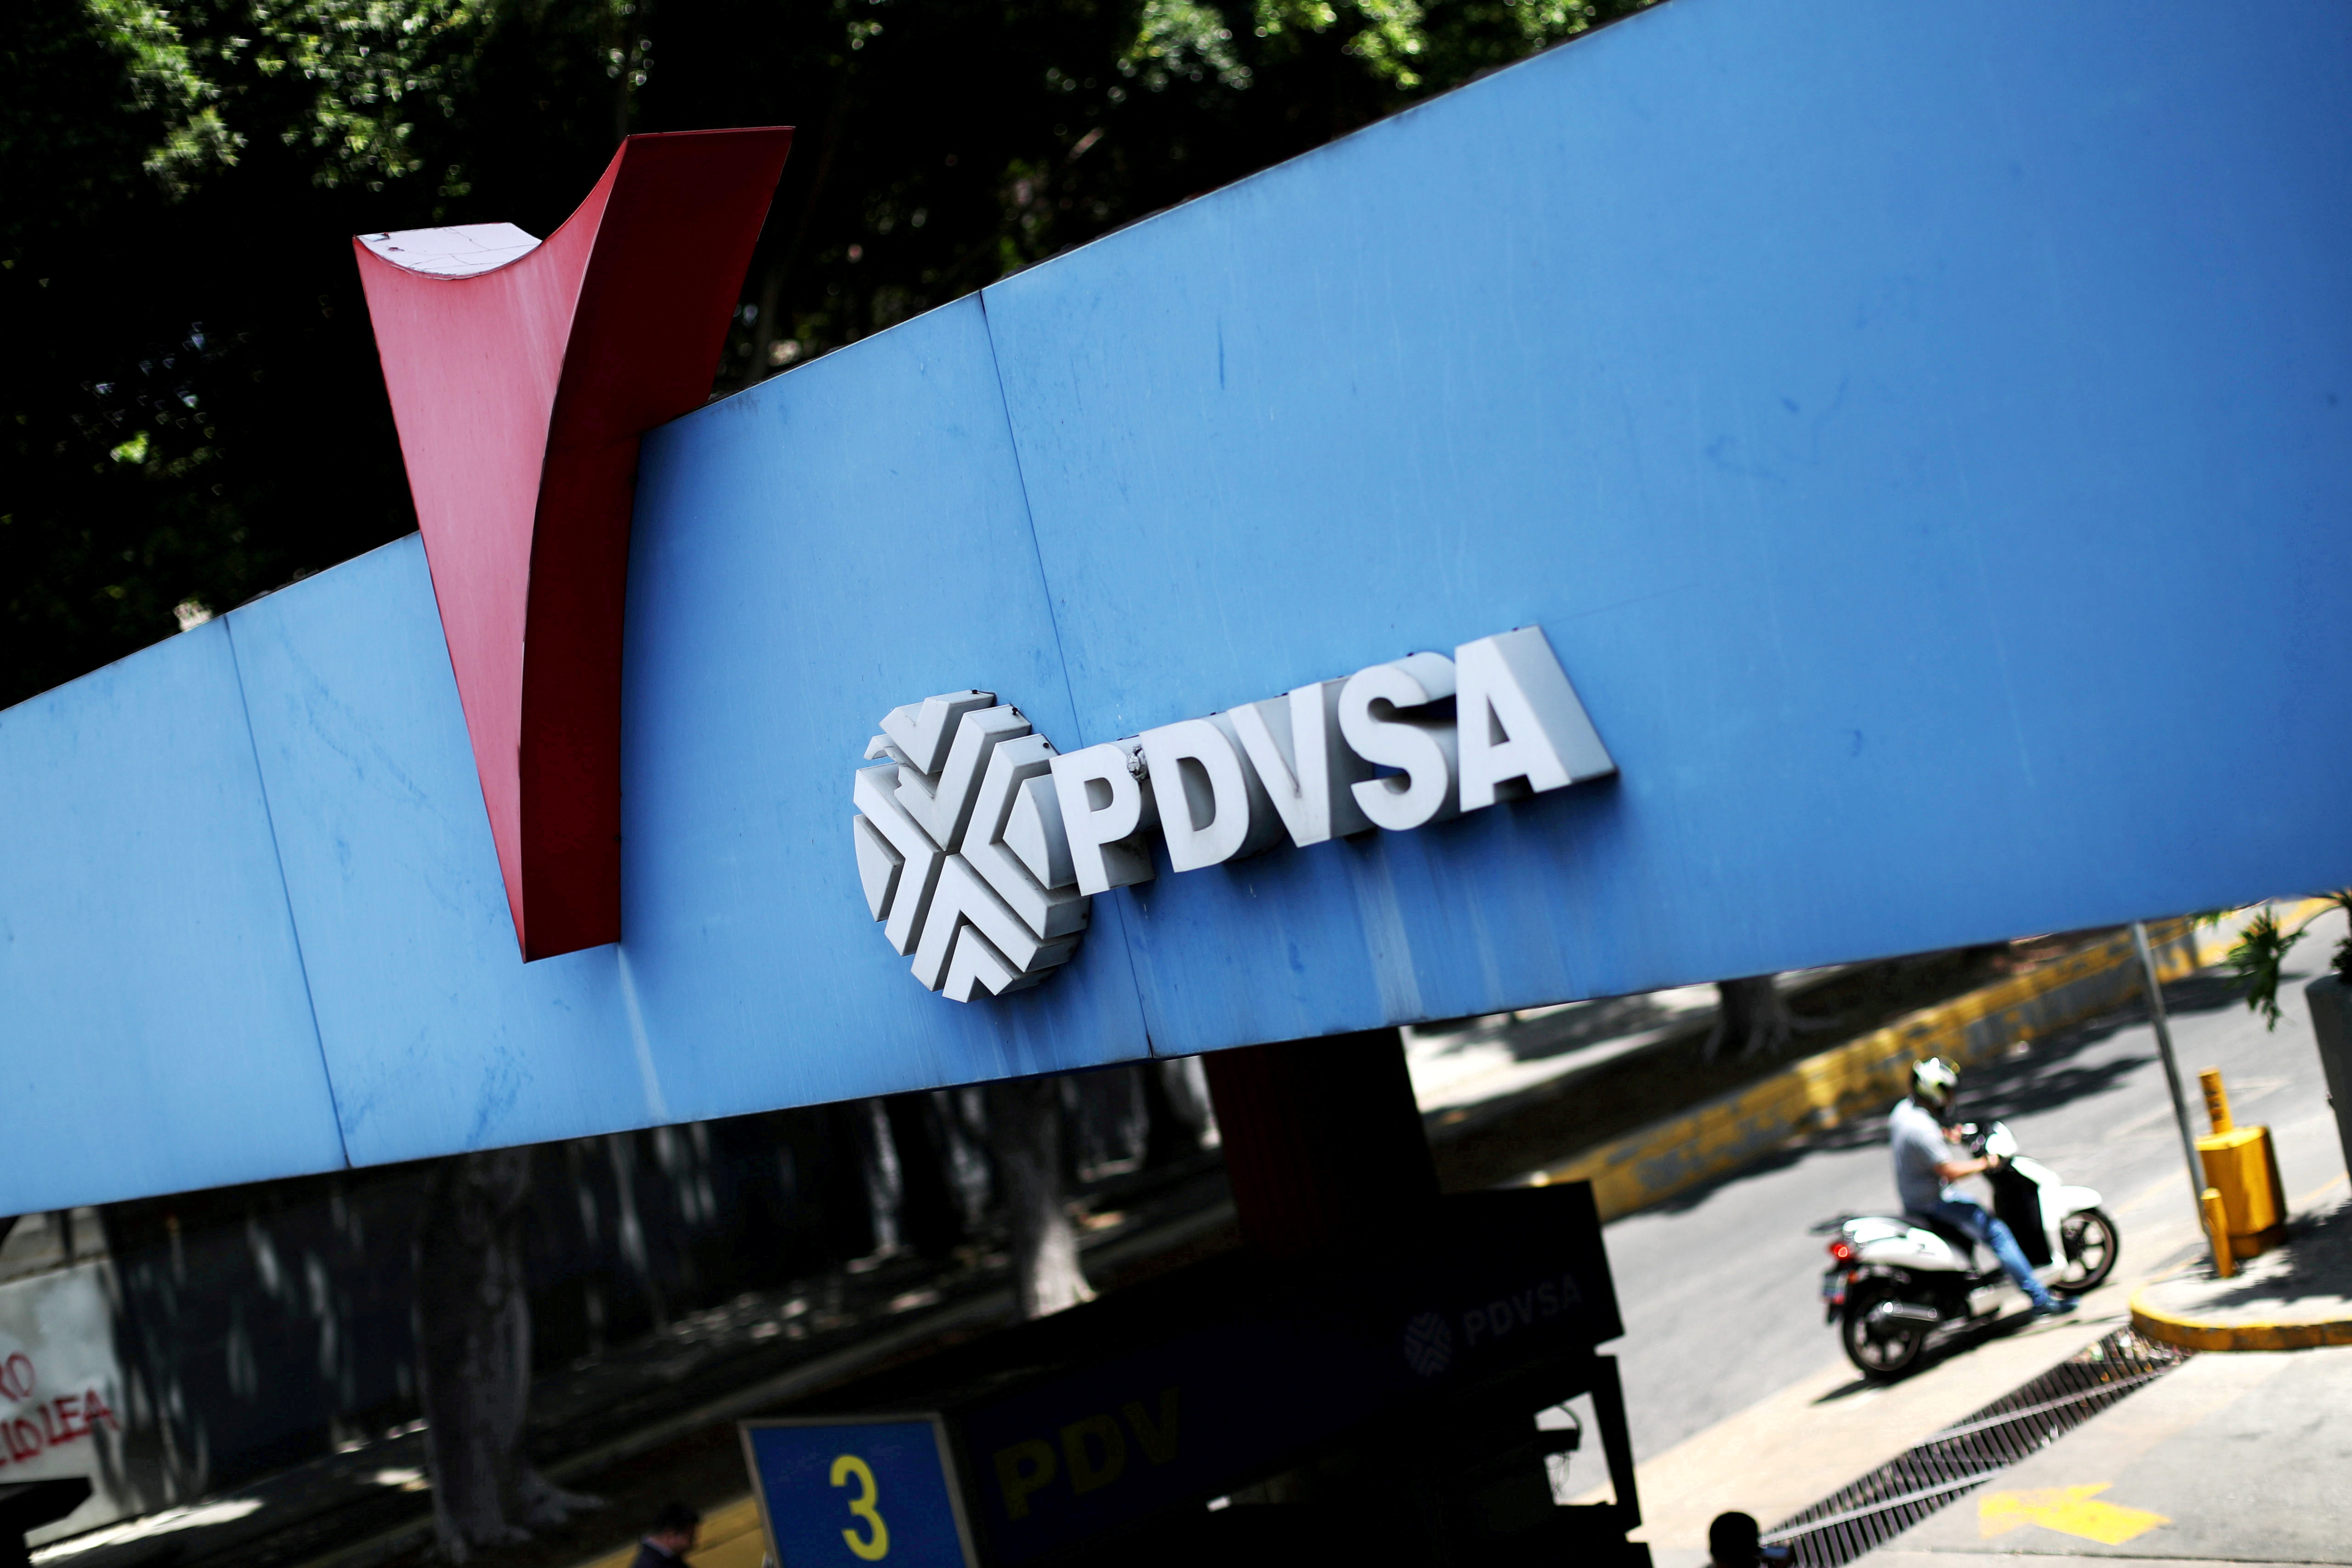 State oil company PDVSA's logo is seen at a gas station in Caracas, Venezuela May 17, 2019. REUTERS/Ivan Alvarado